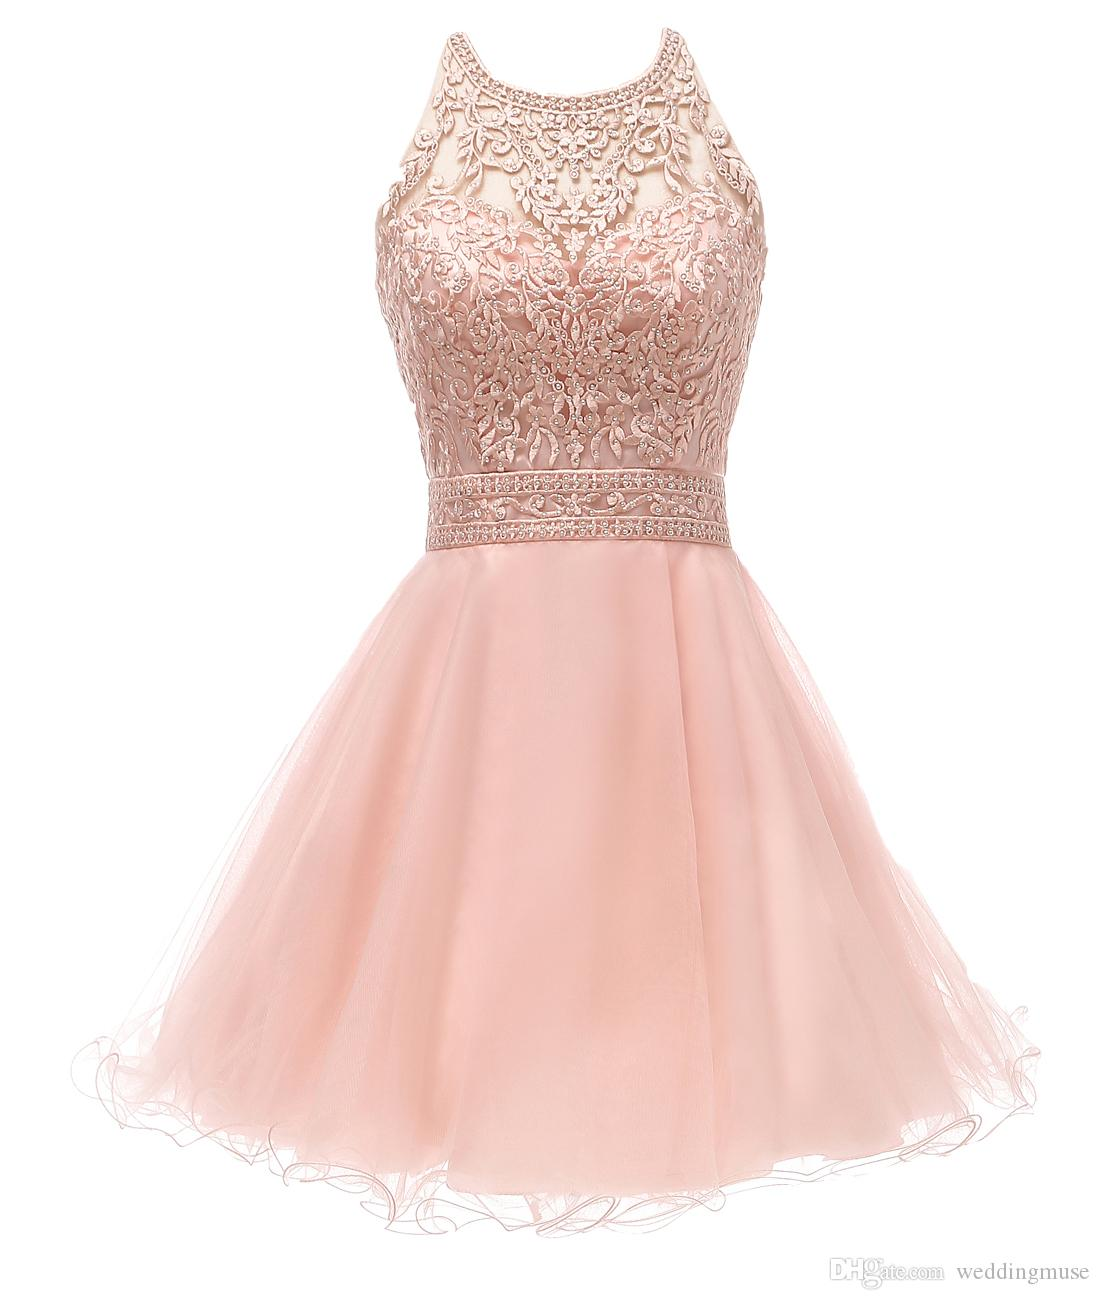 57efb5d67bb New Blush Short Prom Dresses Halter Lace Appliques Beaded A Line Ruffles  Skirt Criss Cross Back Homecoming Dress Graduation Prom Gown Strapless  Homecoming ...